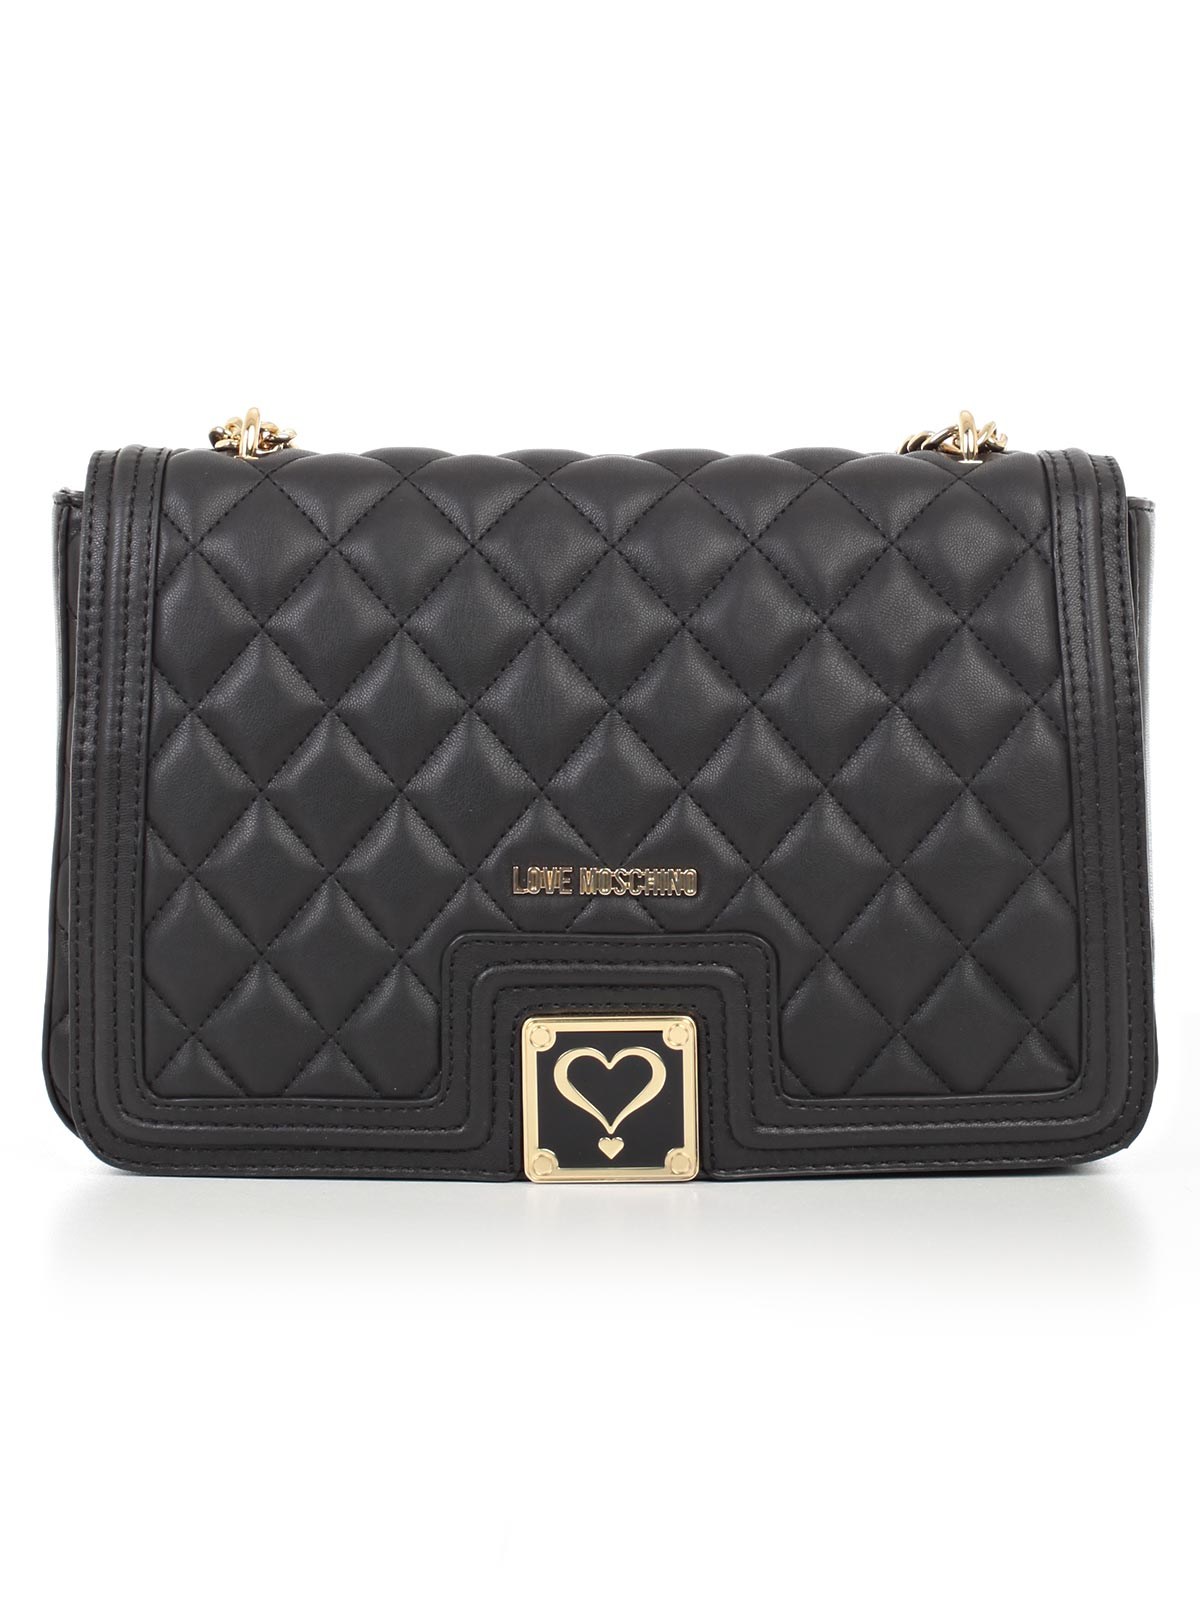 Picture of LOVE MOSCHINO BAG FLAP CROSSBODY QUILTED NAPPA